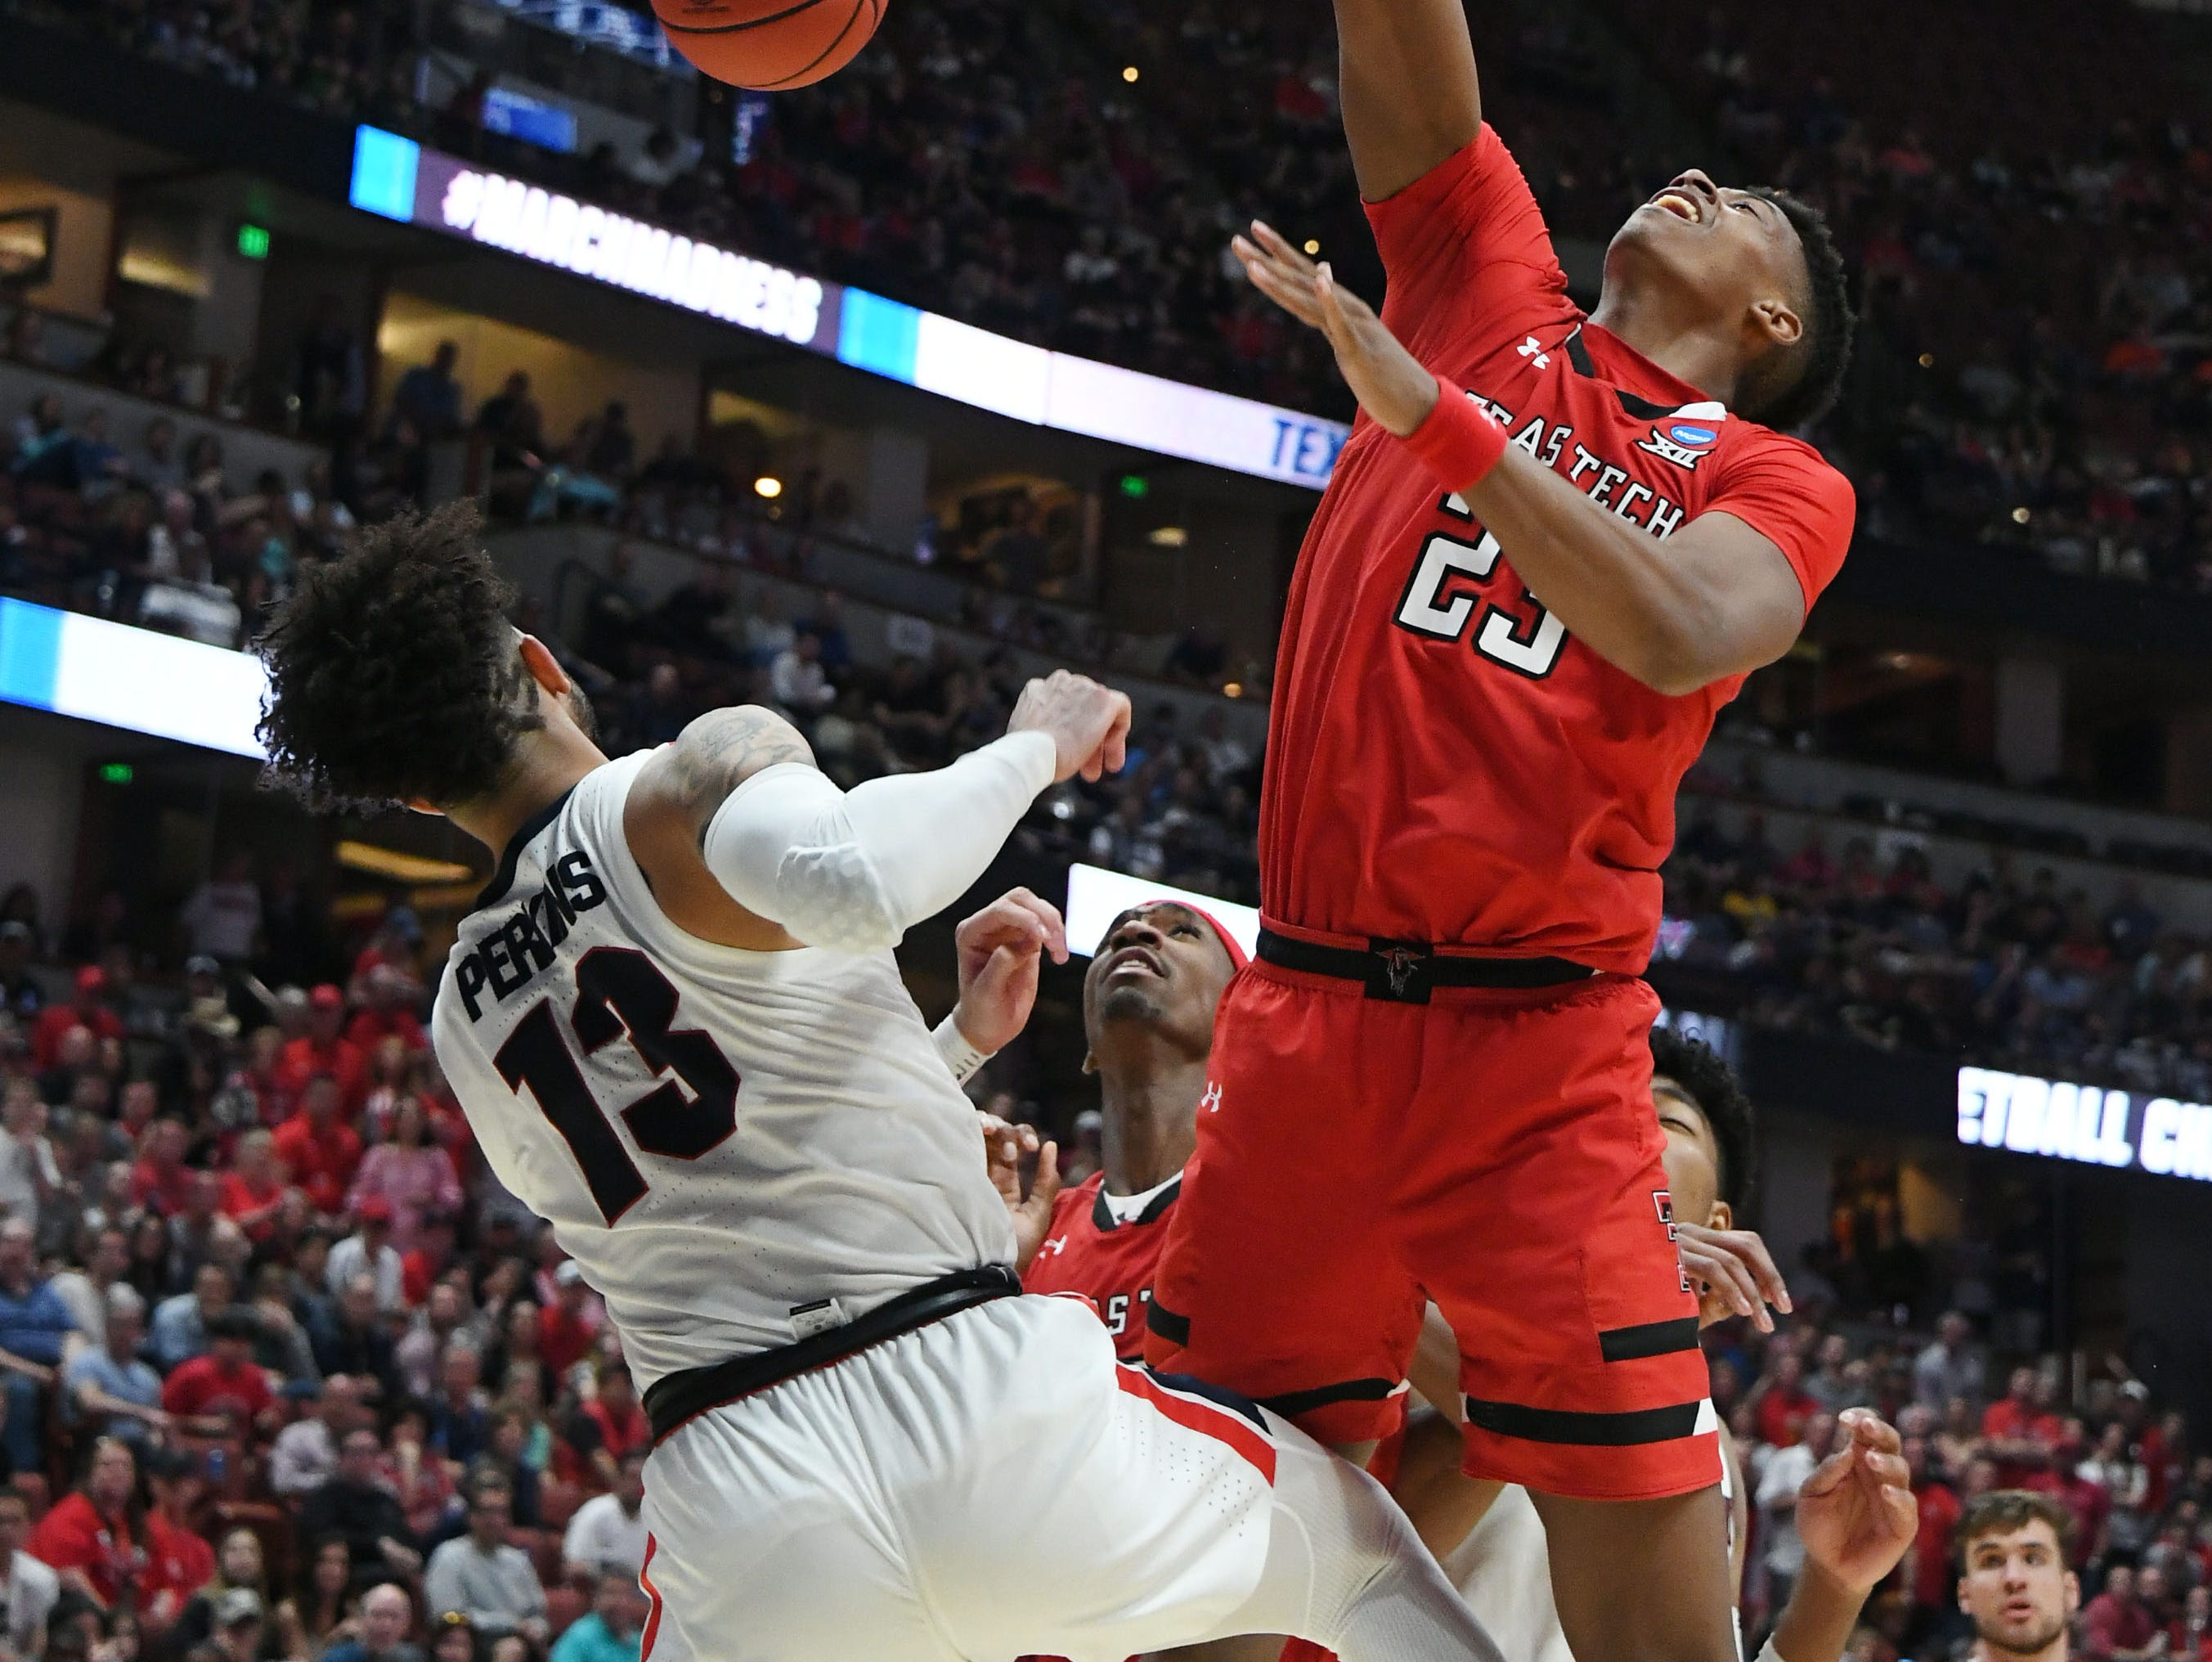 March 30, 2019; Anaheim, CA, USA; Texas Tech Red Raiders guard Jarrett Culver (23) dunks to score a basket against Gonzaga Bulldogs guard Josh Perkins (13) during the second half in the championship game of the west regional of the 2019 NCAA Tournament at Honda Center. Mandatory Credit: Richard Mackson-USA TODAY Sports